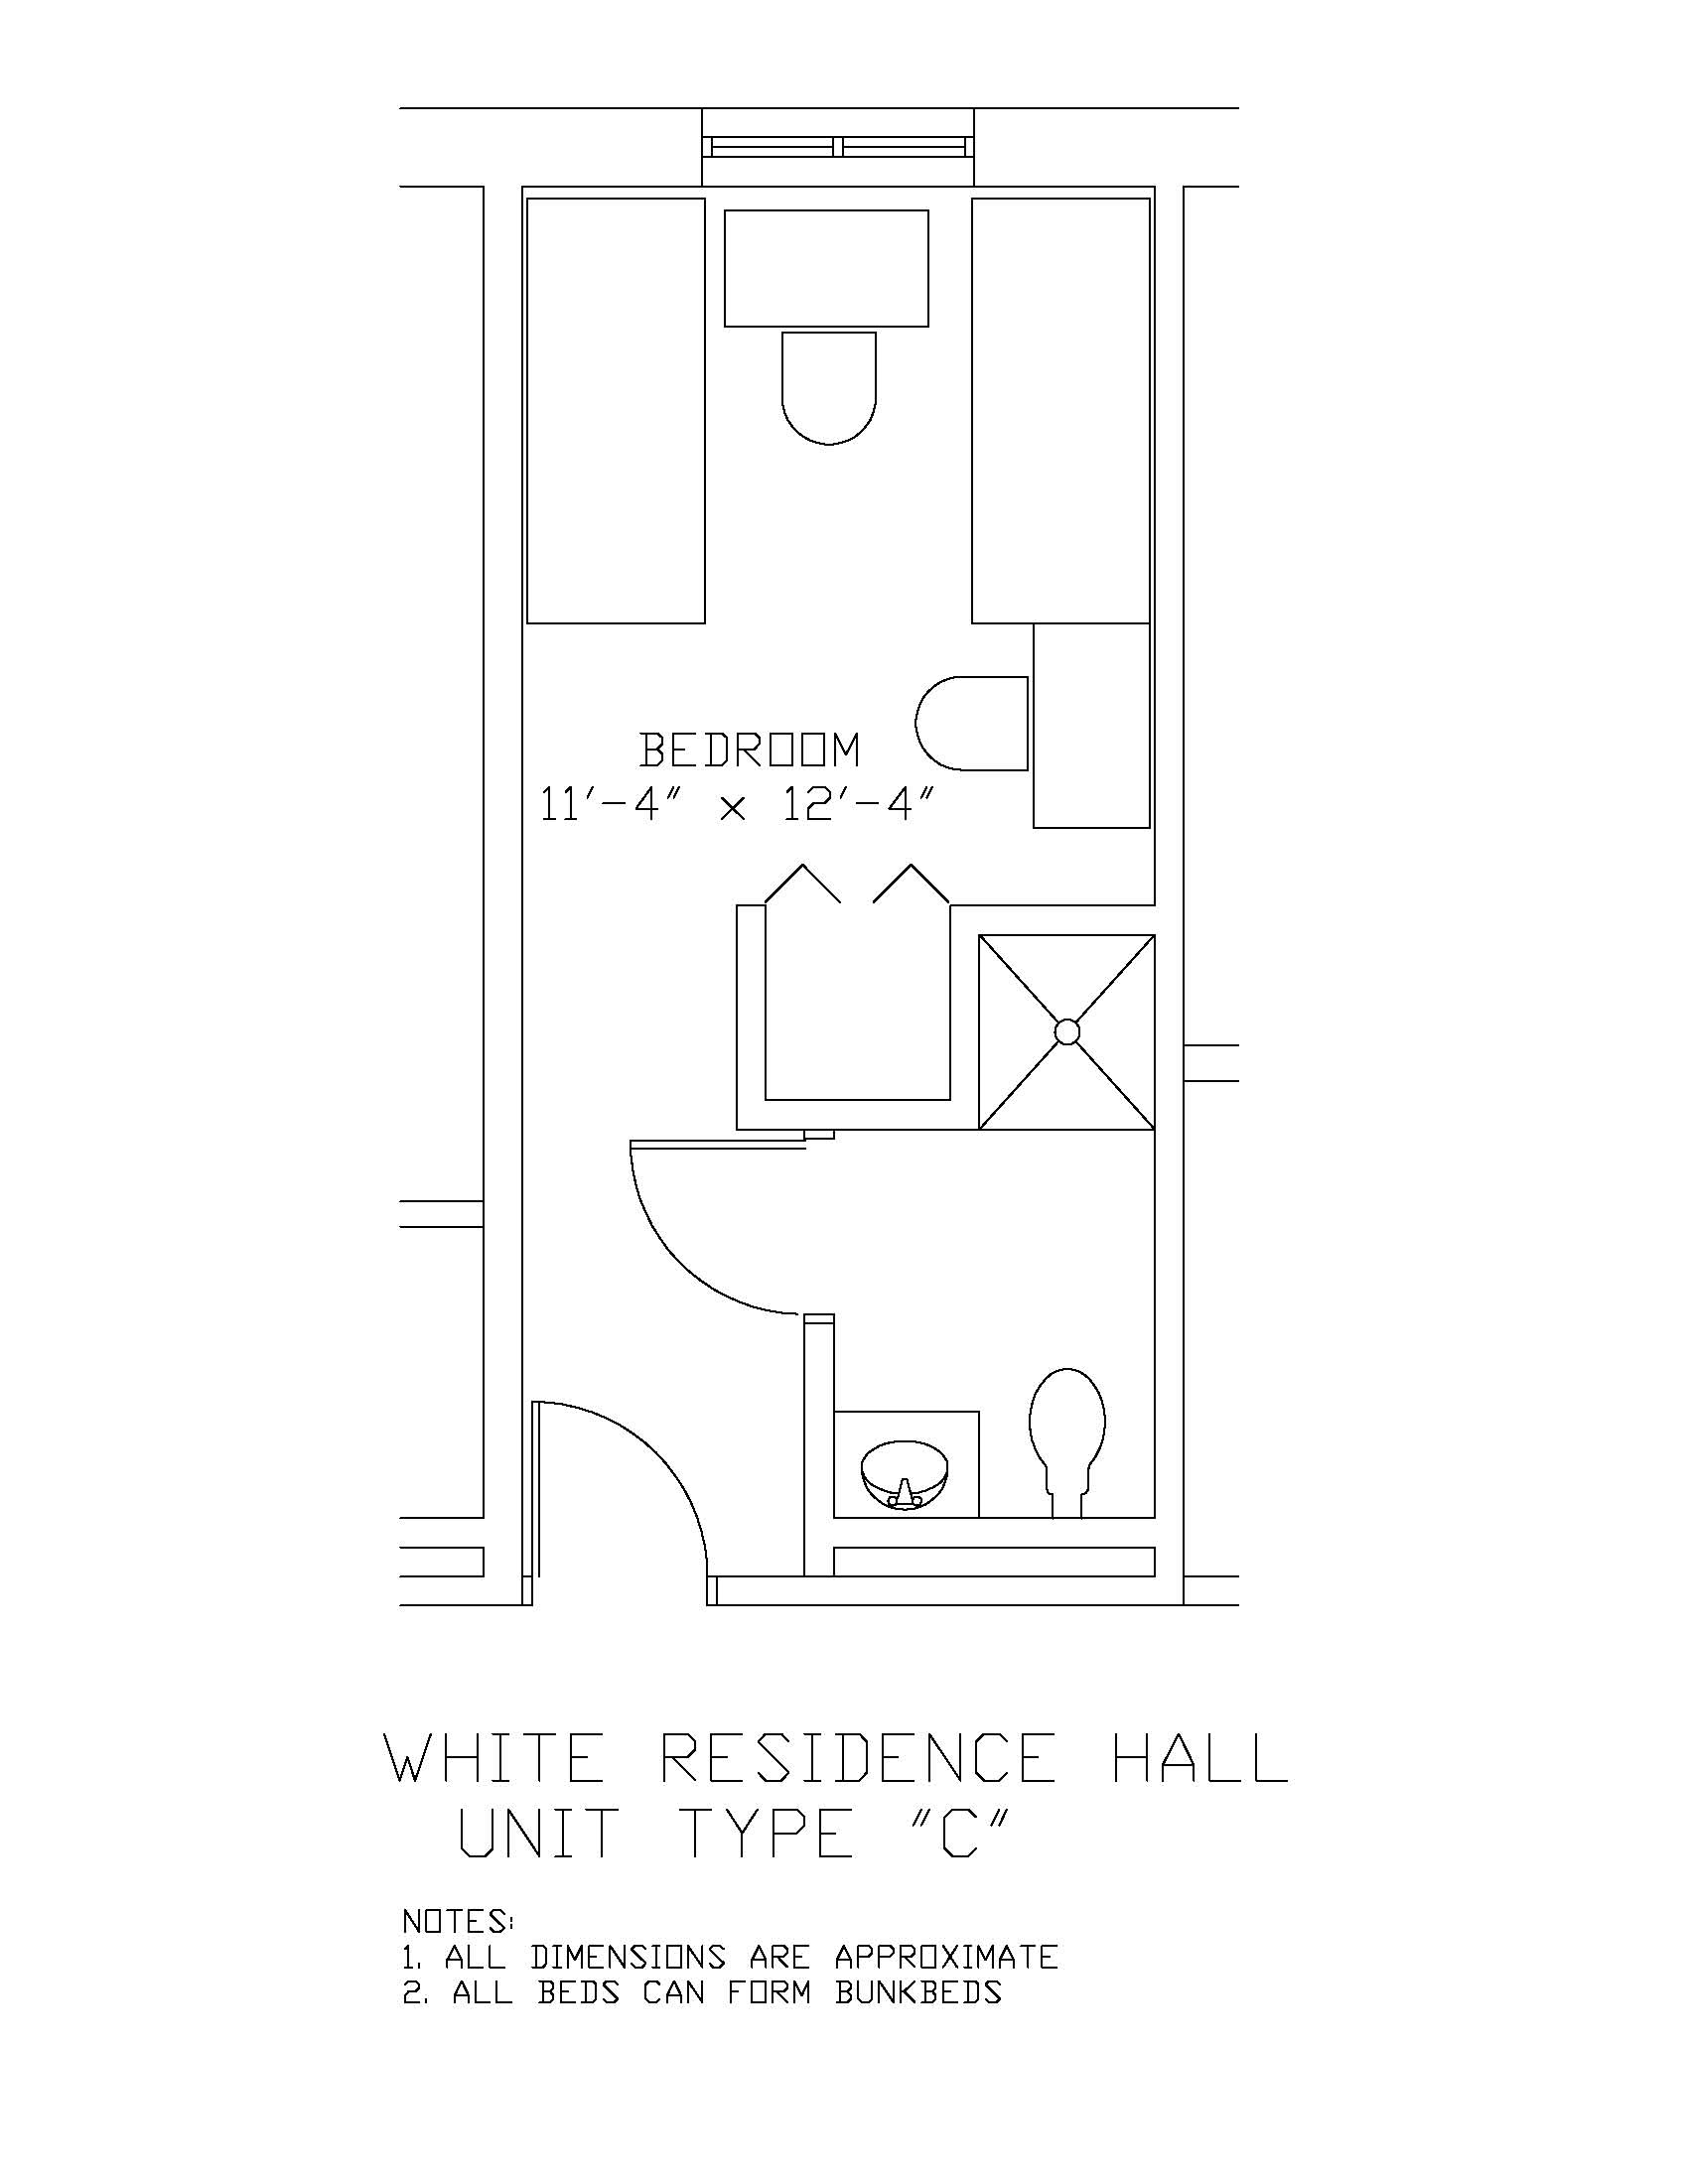 James S. White Hall: Type C